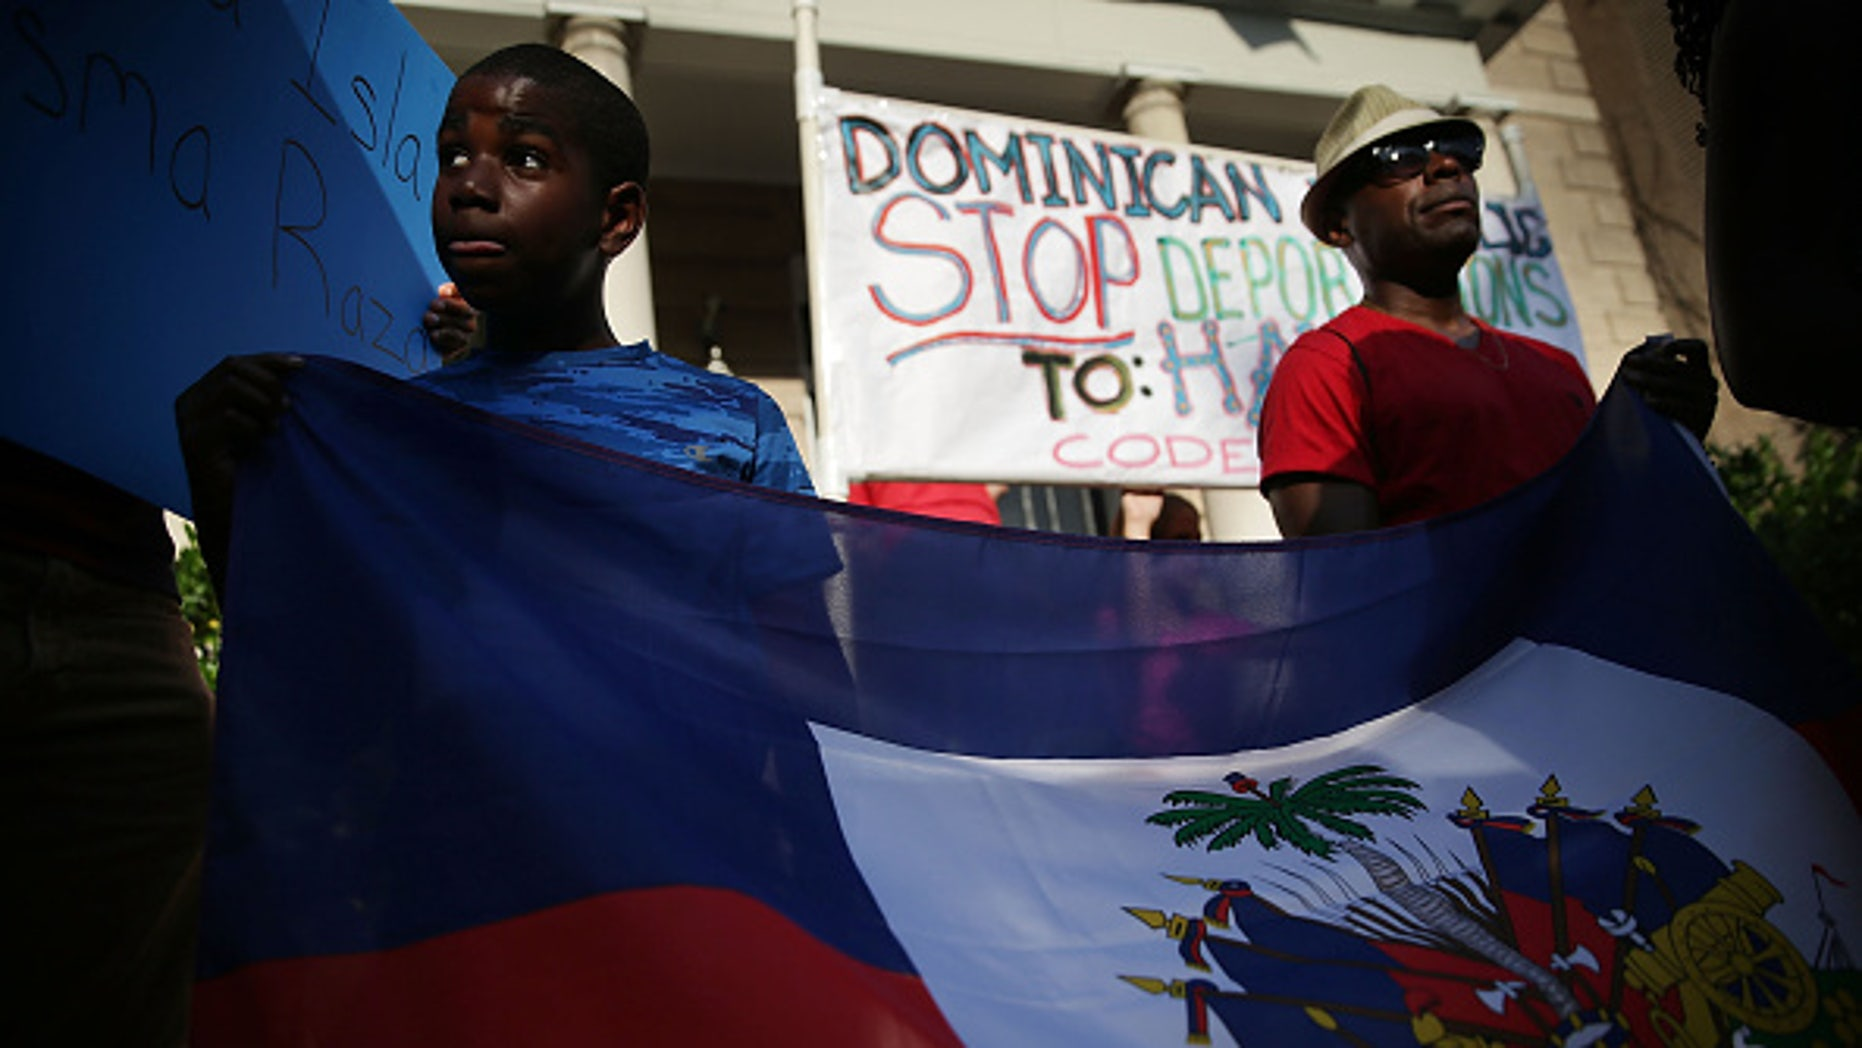 Rally outside the Embassy of the Dominican Republic in Washington, DC, protesting the mass deportations of Haitians.